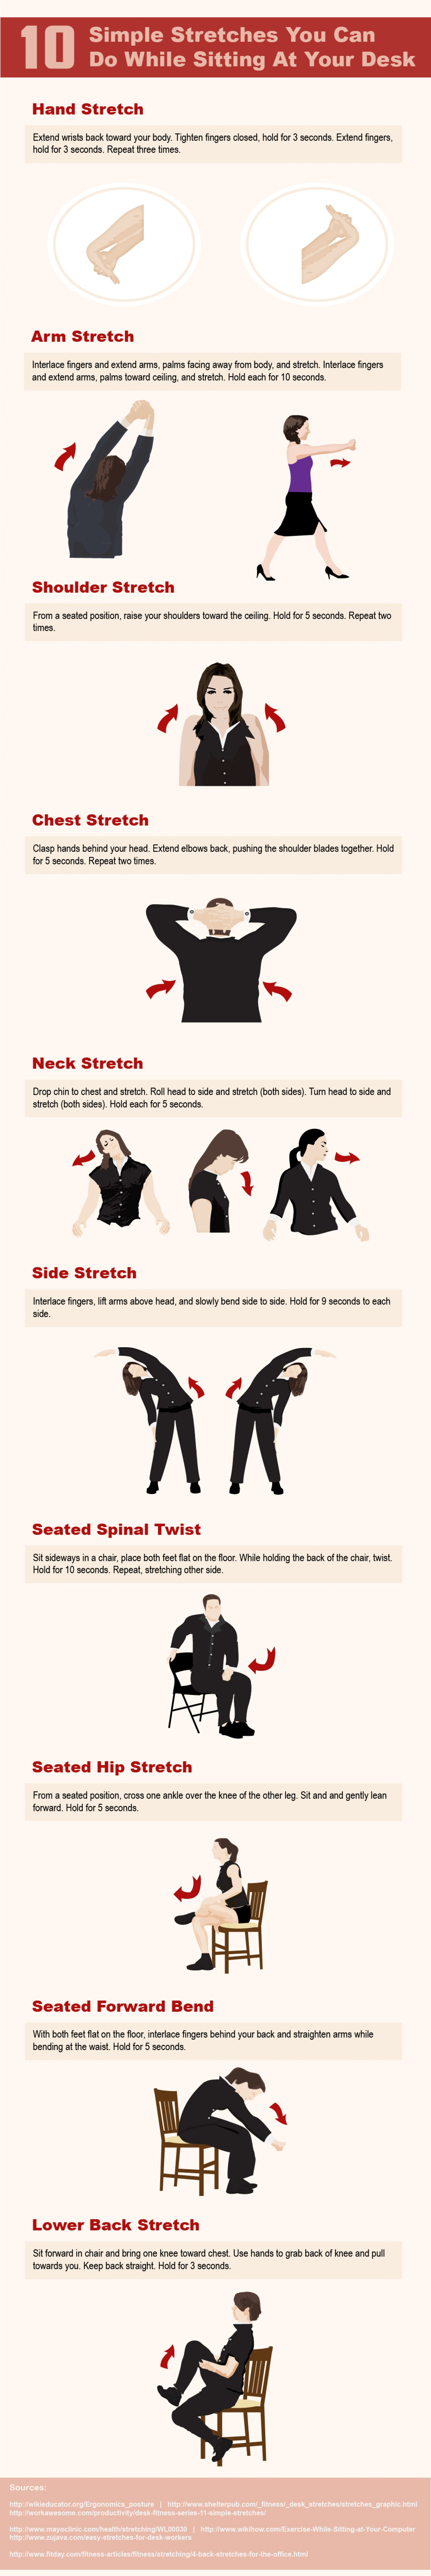 Office Chair Stretches - Static stretching chart 10 simple stretches to do at static stretchingchair workoutoffice